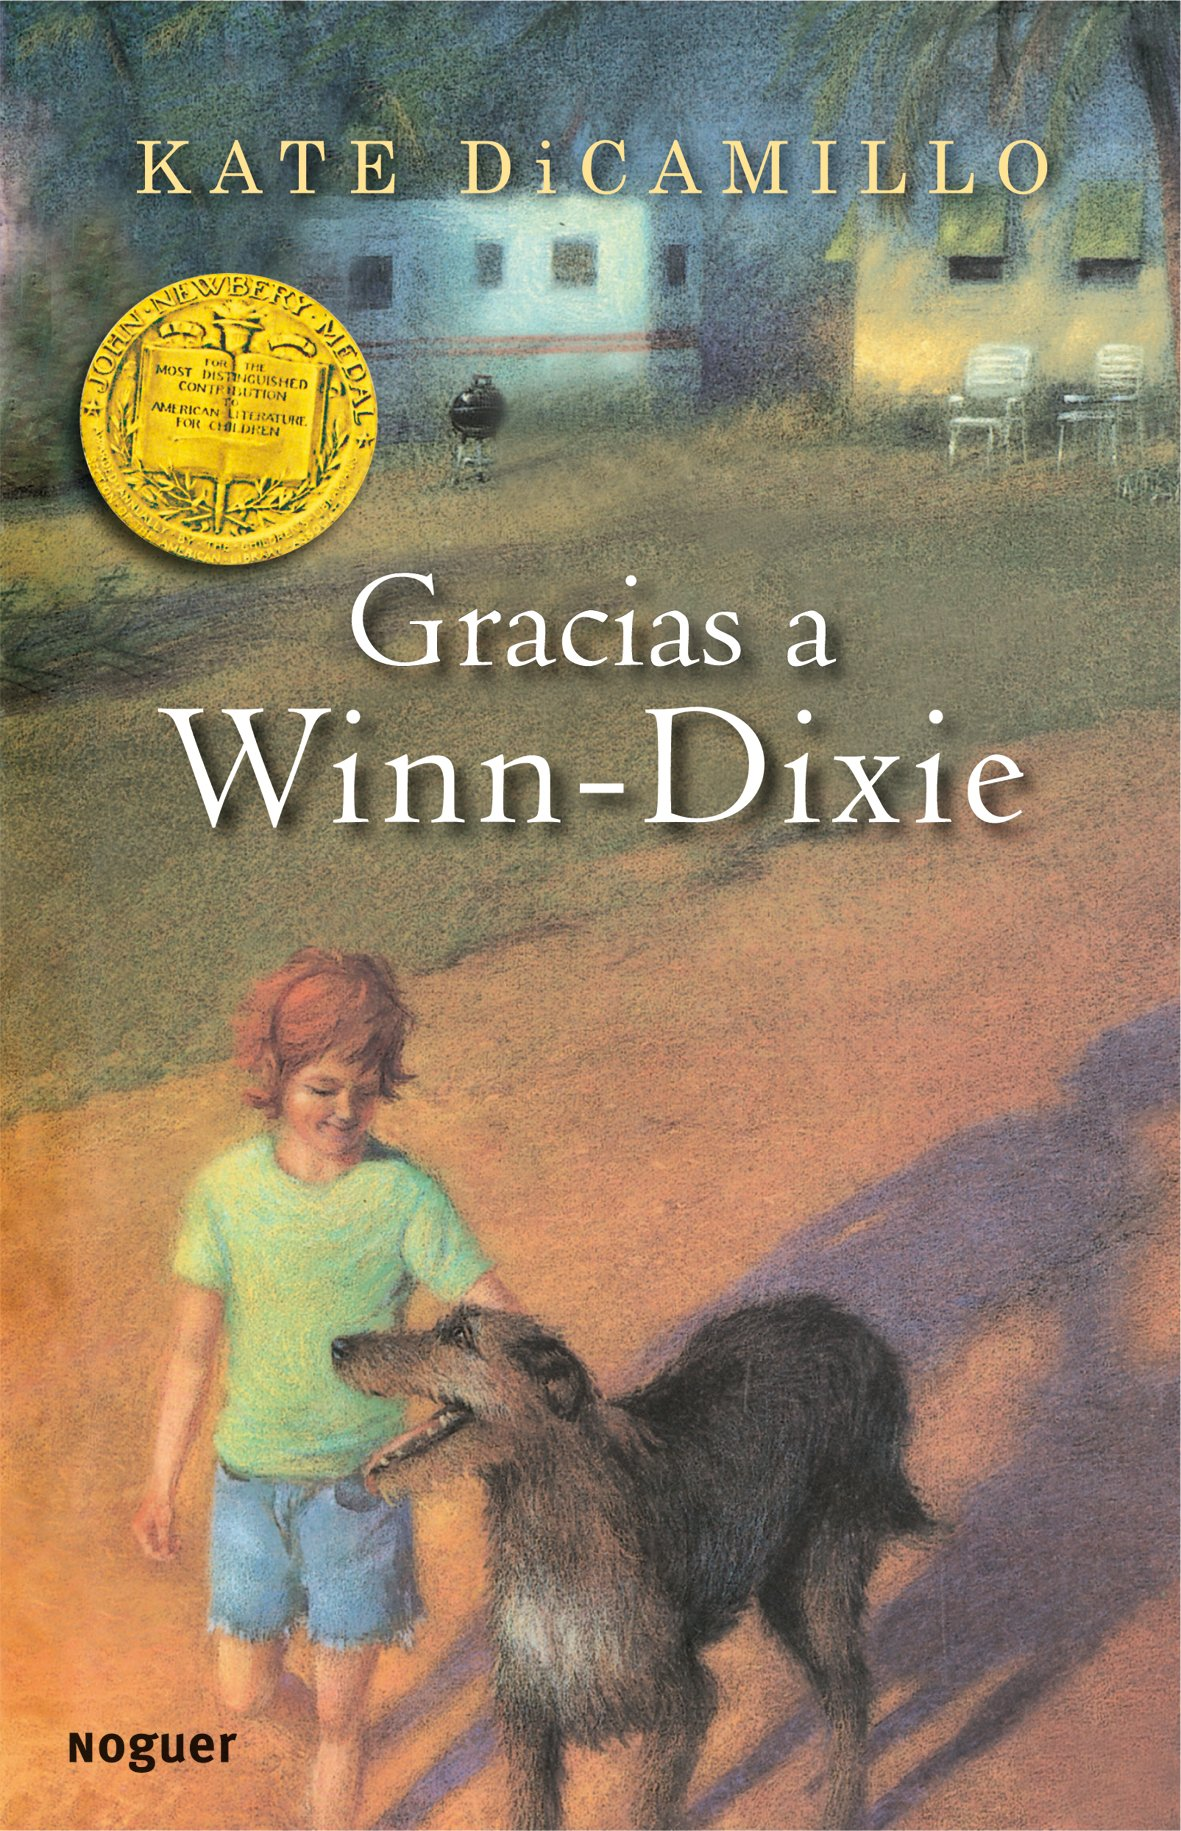 Review of winn dixie free appliances - Gracias A Winn Dixie Because Of Winn Dixie Spanish Edition Kate Dicamillo Noguer 9788427932654 Amazon Com Books